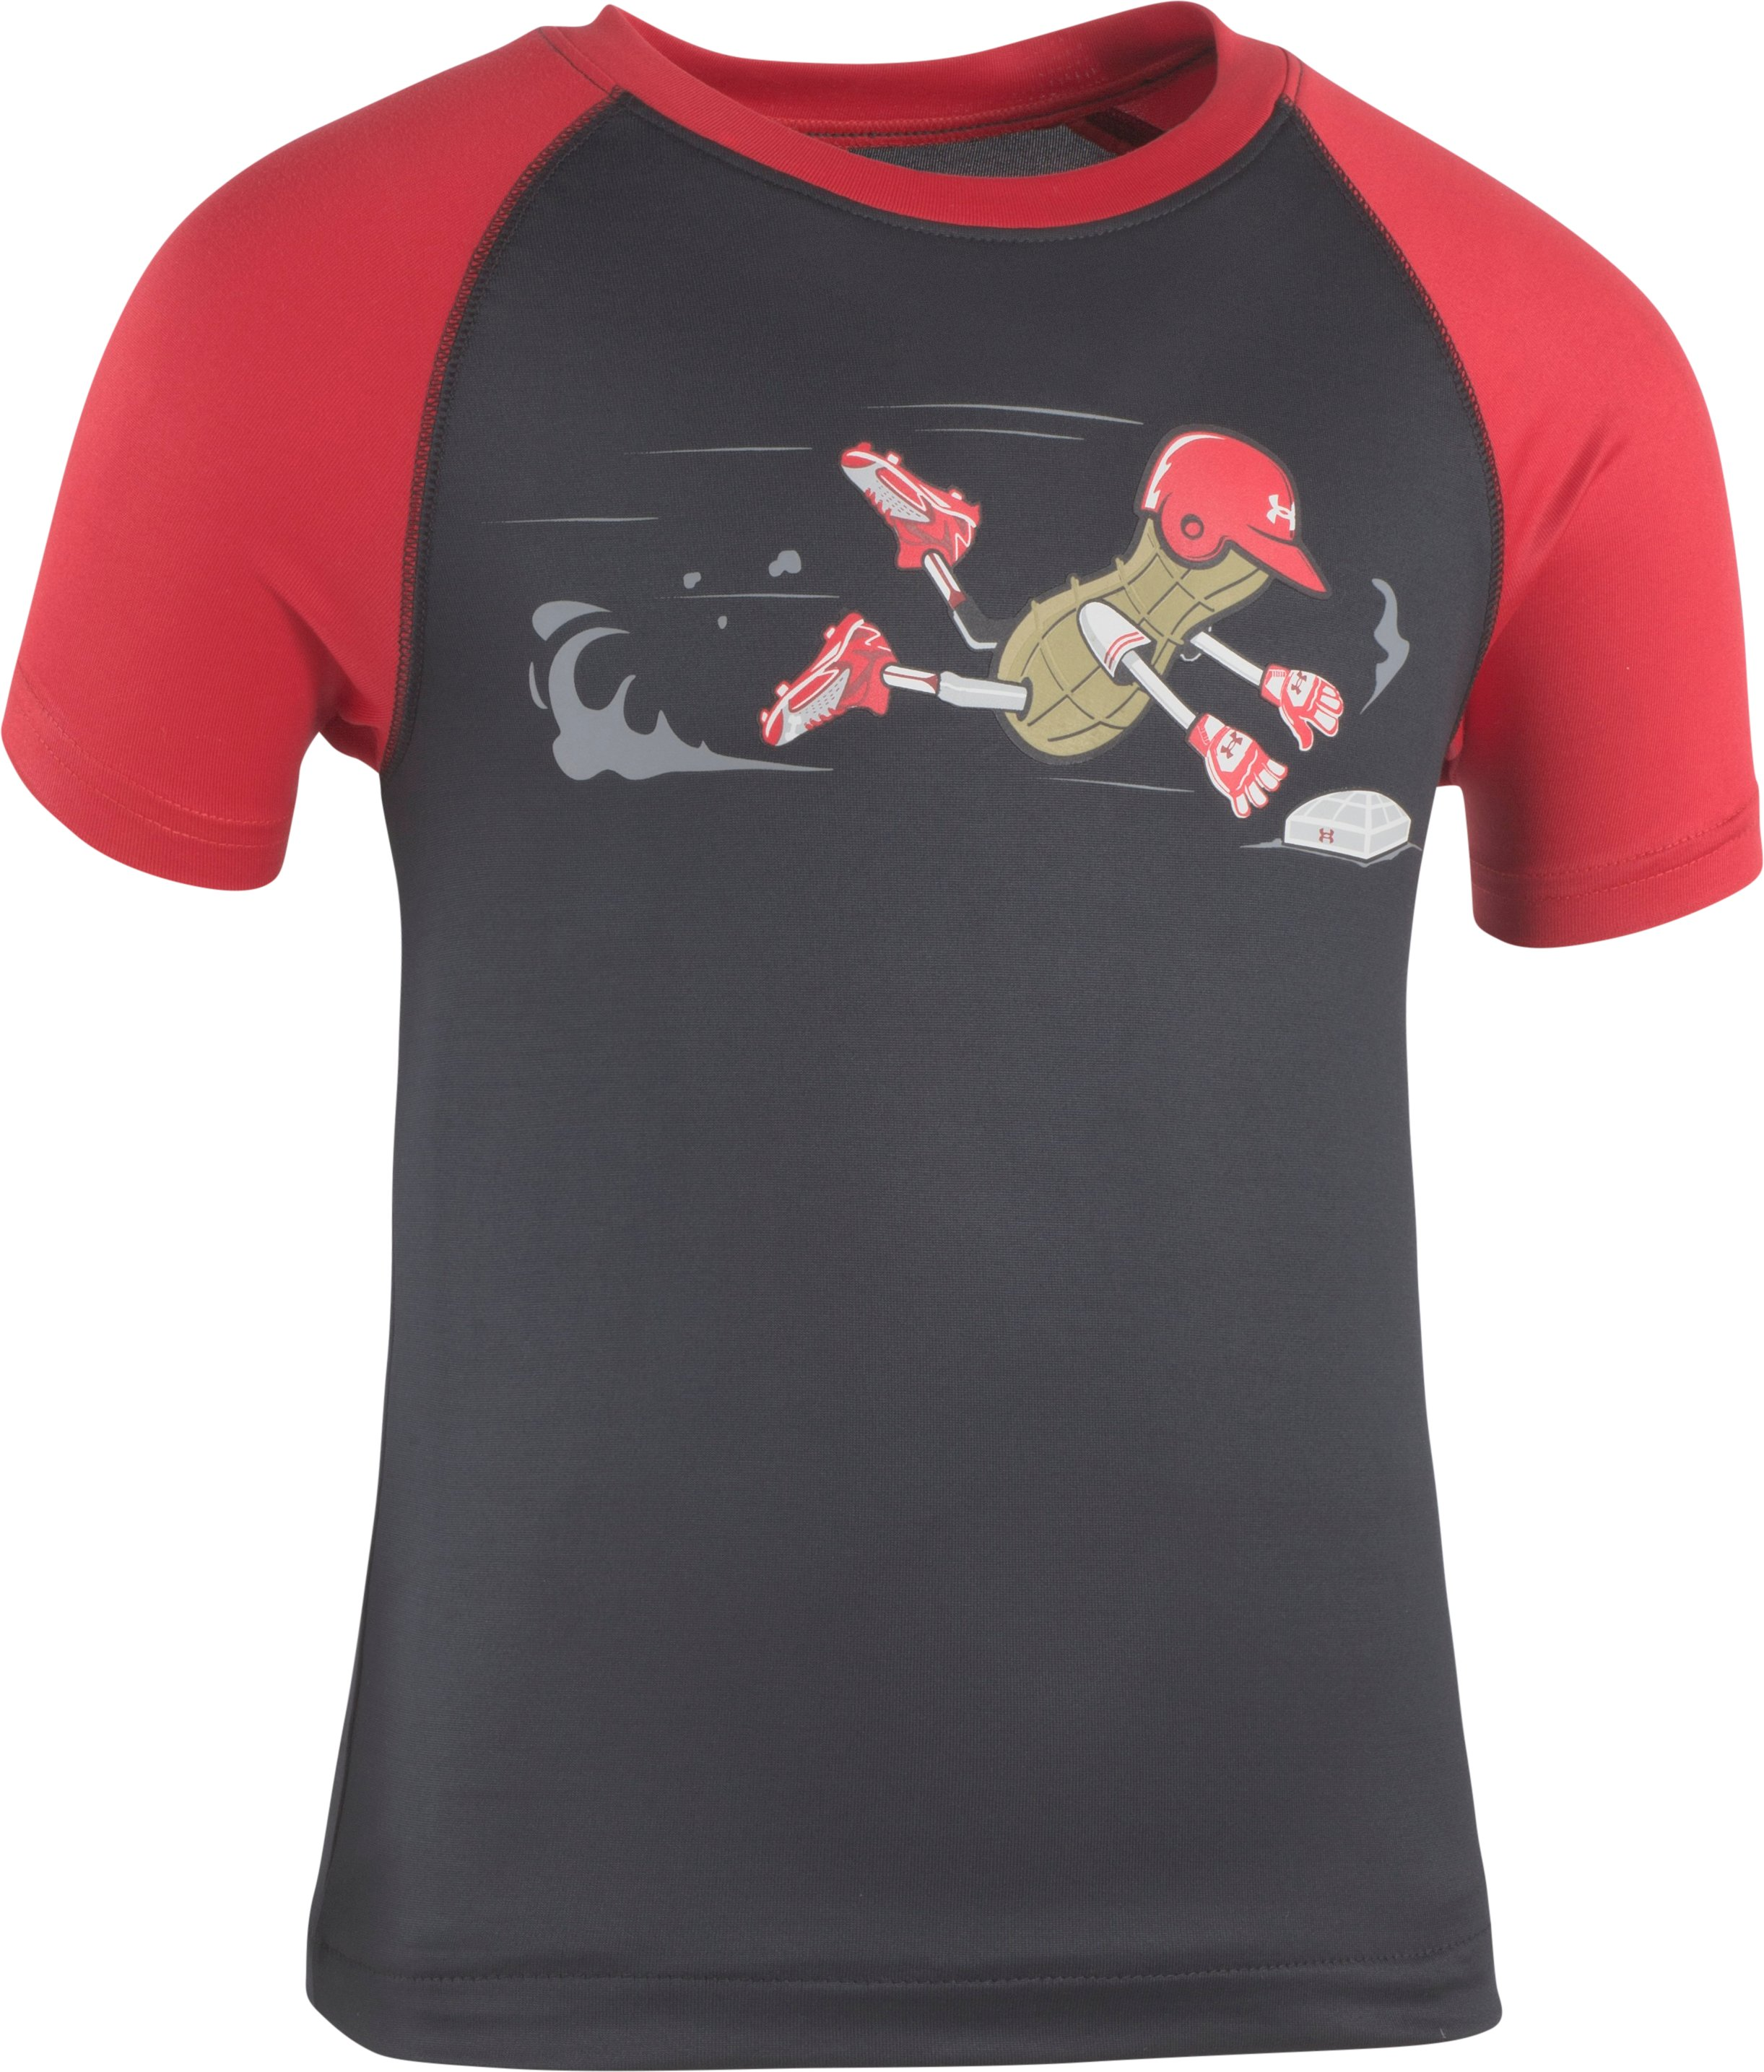 Boys' Toddler UA Peanut Home Run Short Sleeve T-Shirt 1 Color $19.99